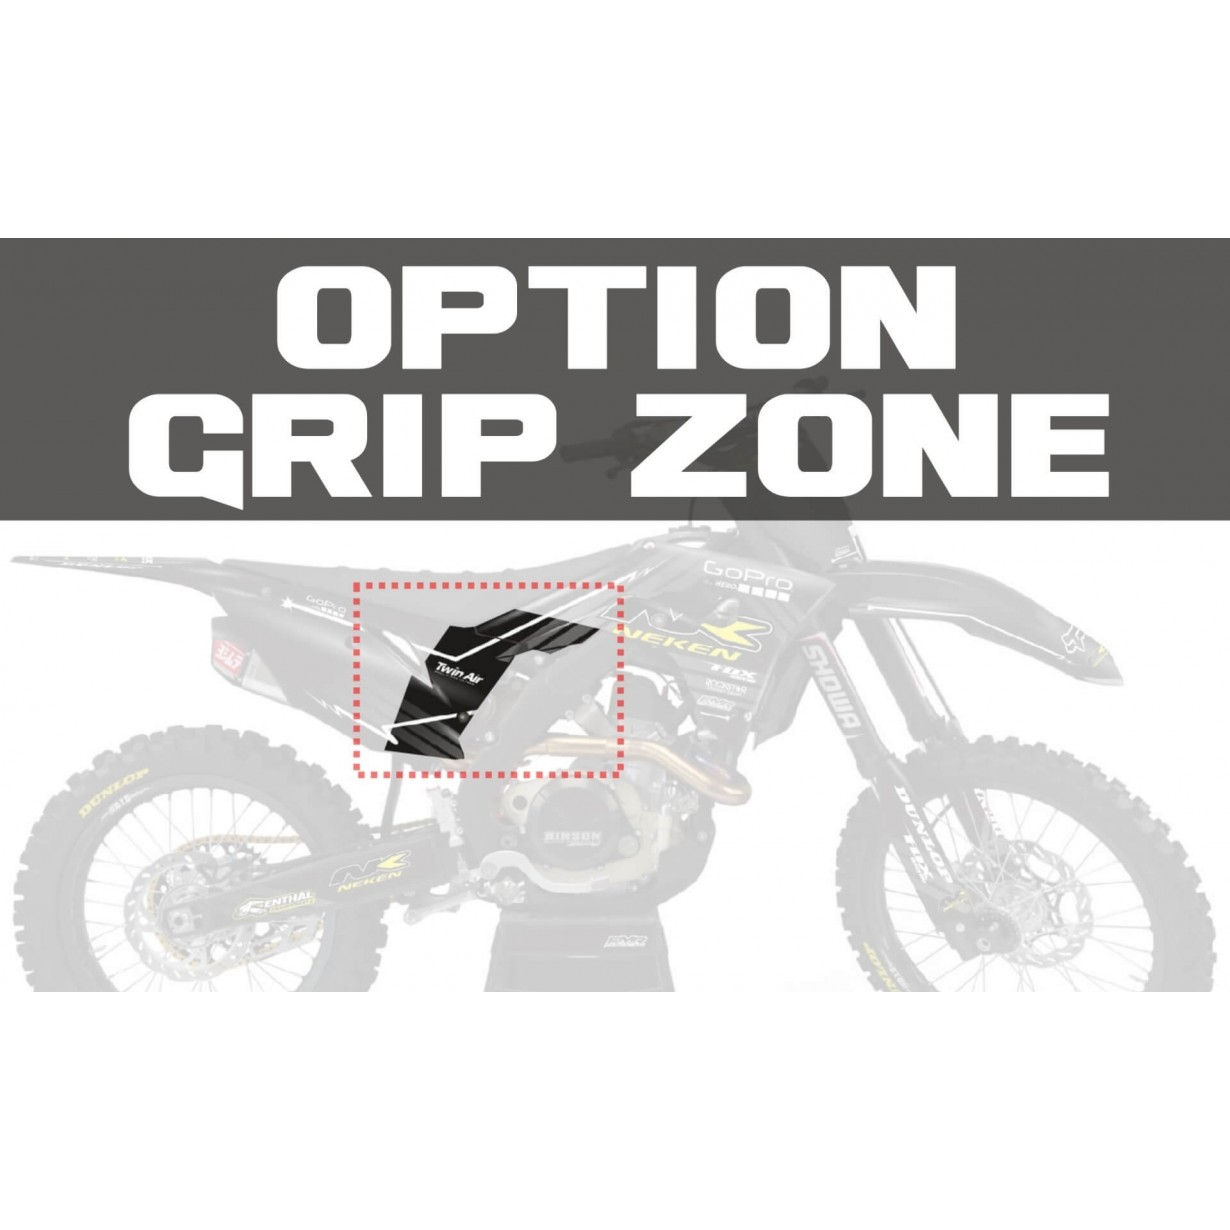 Option grip mqe